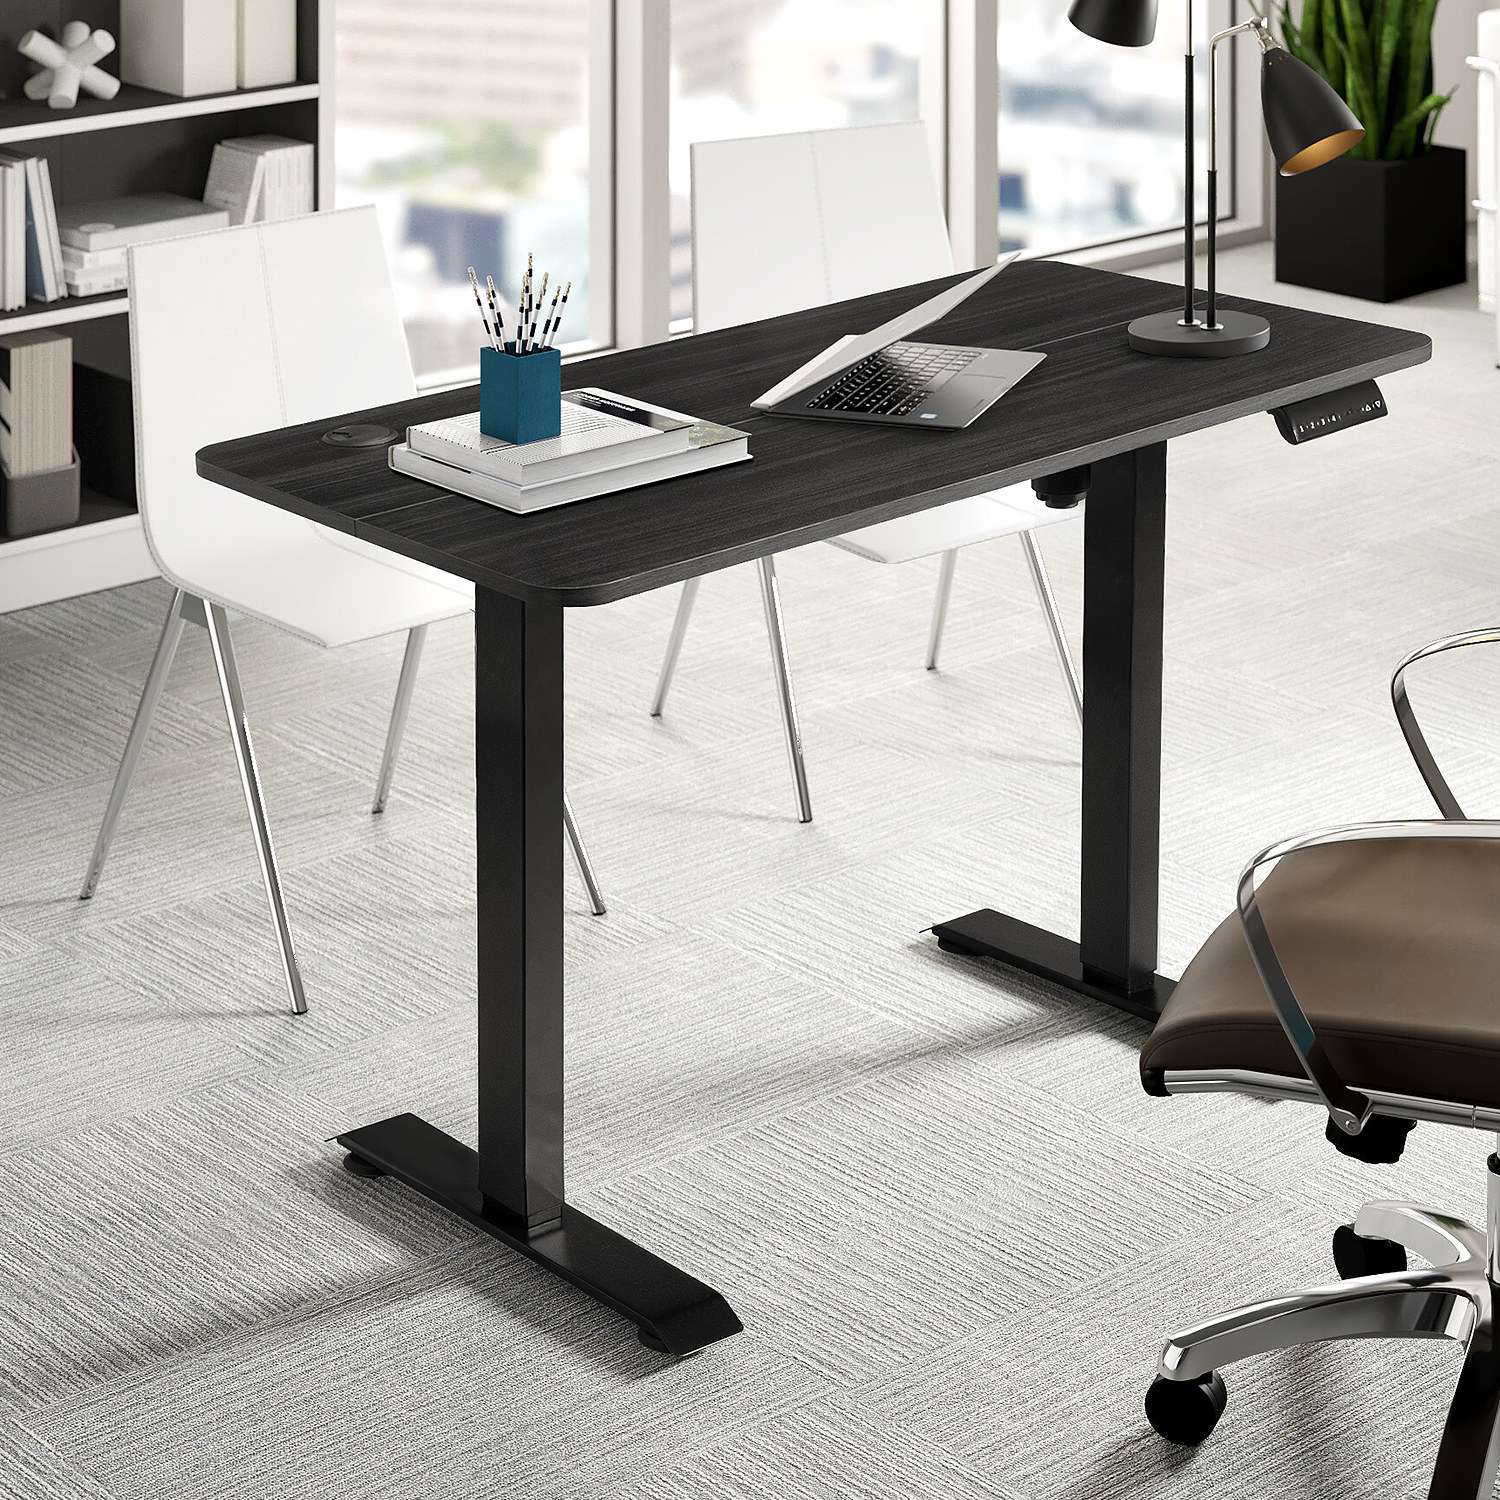 the desk in the color black with office supplies and a computer on it